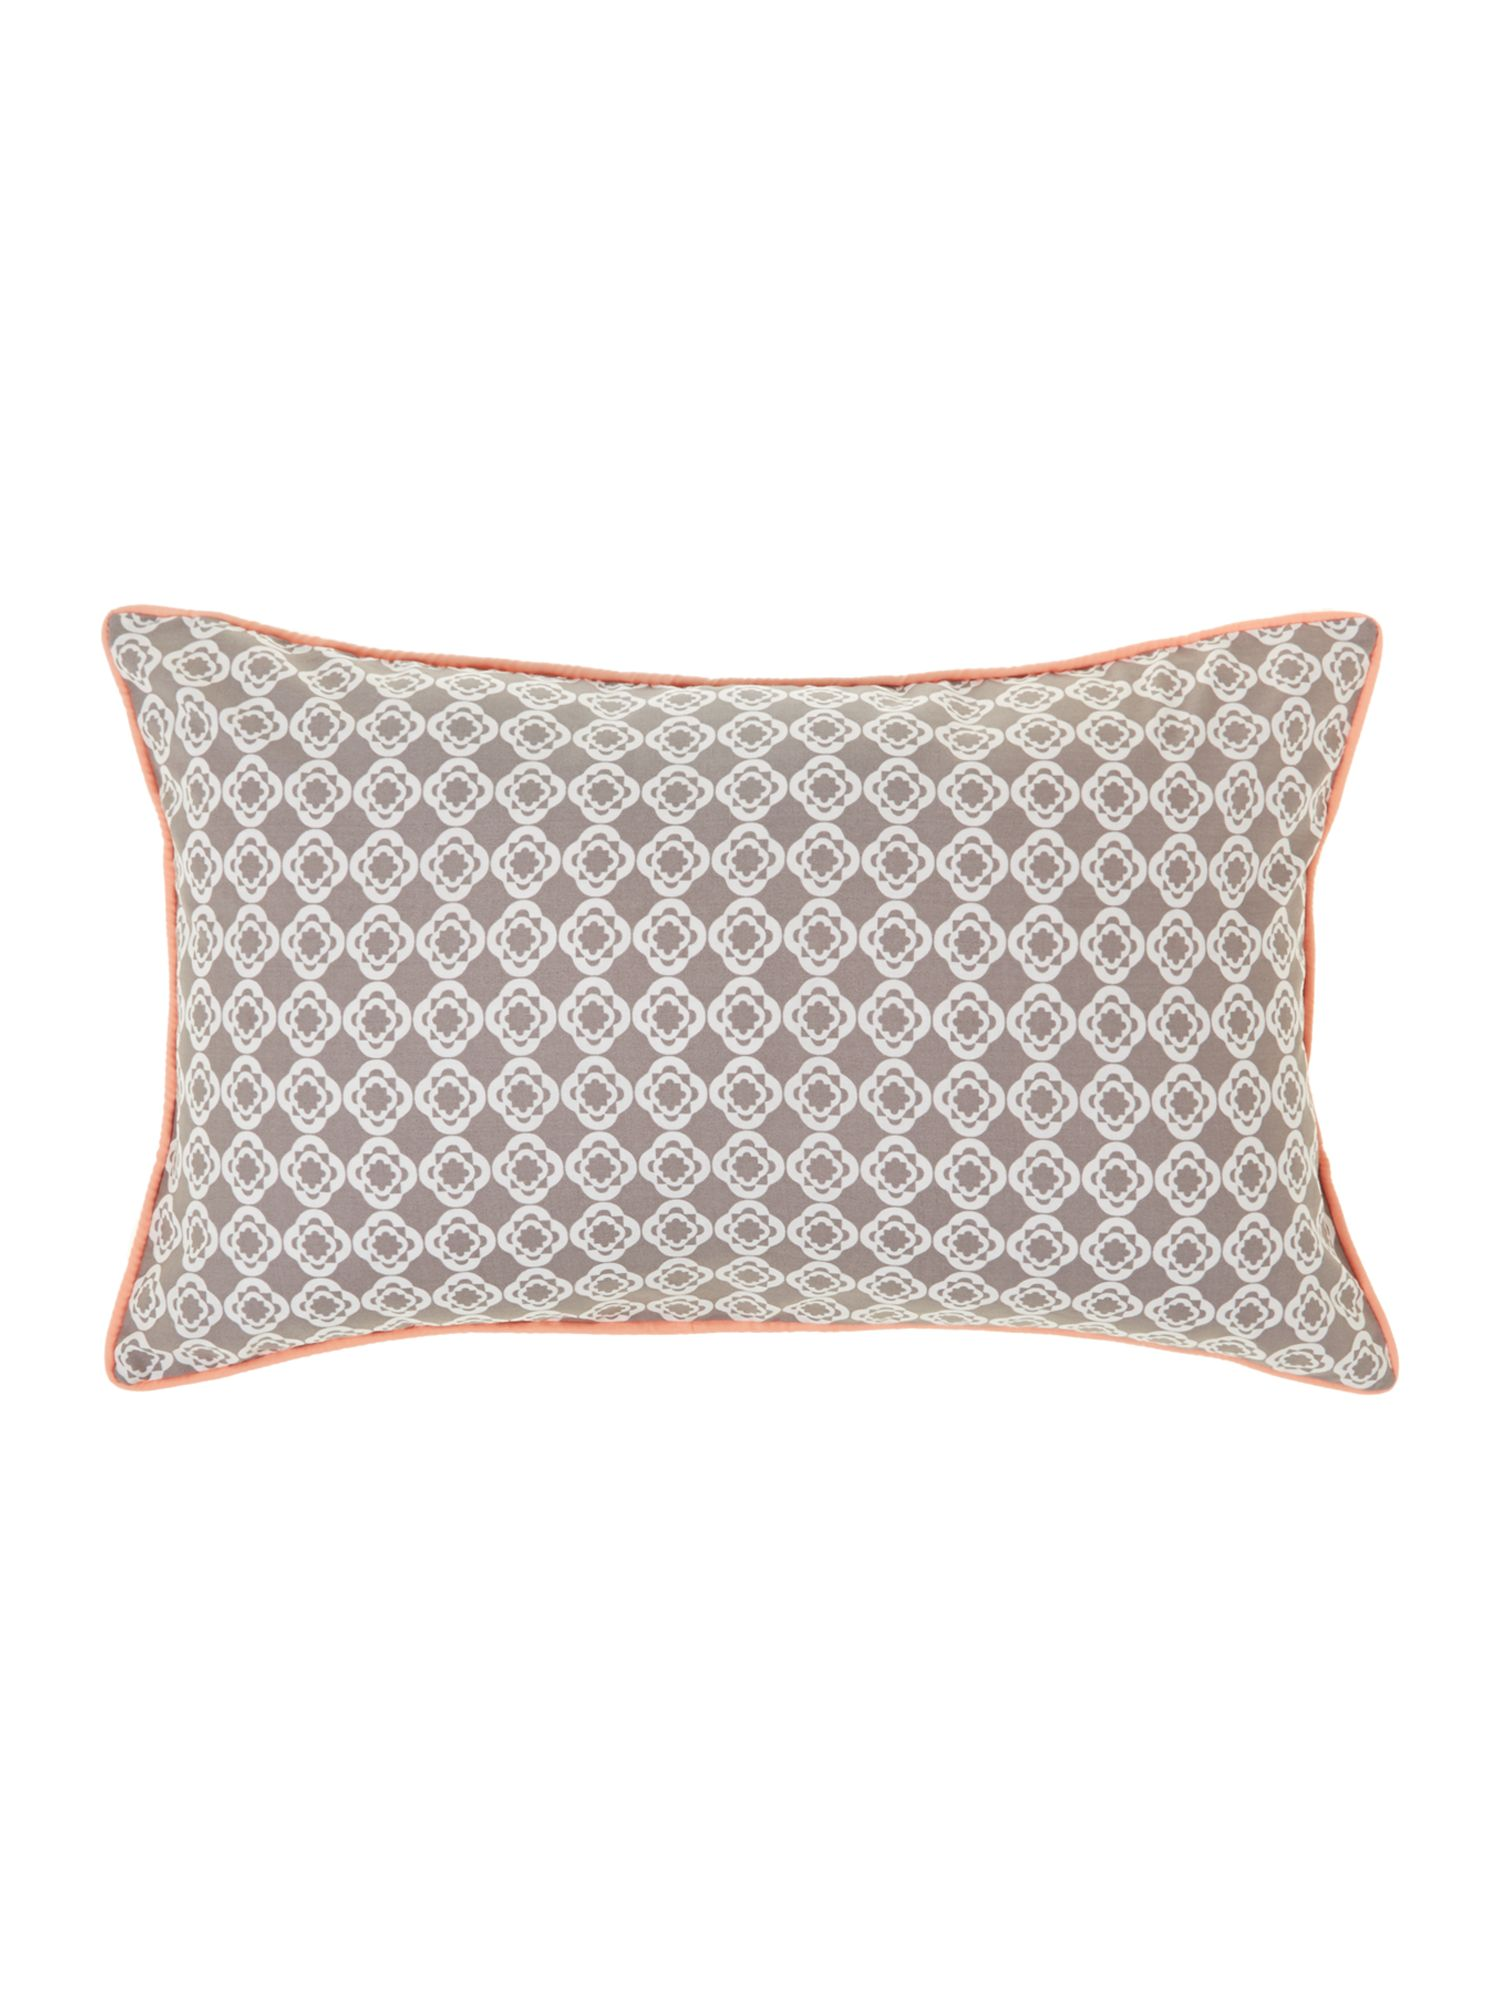 Jaipur printed cushion